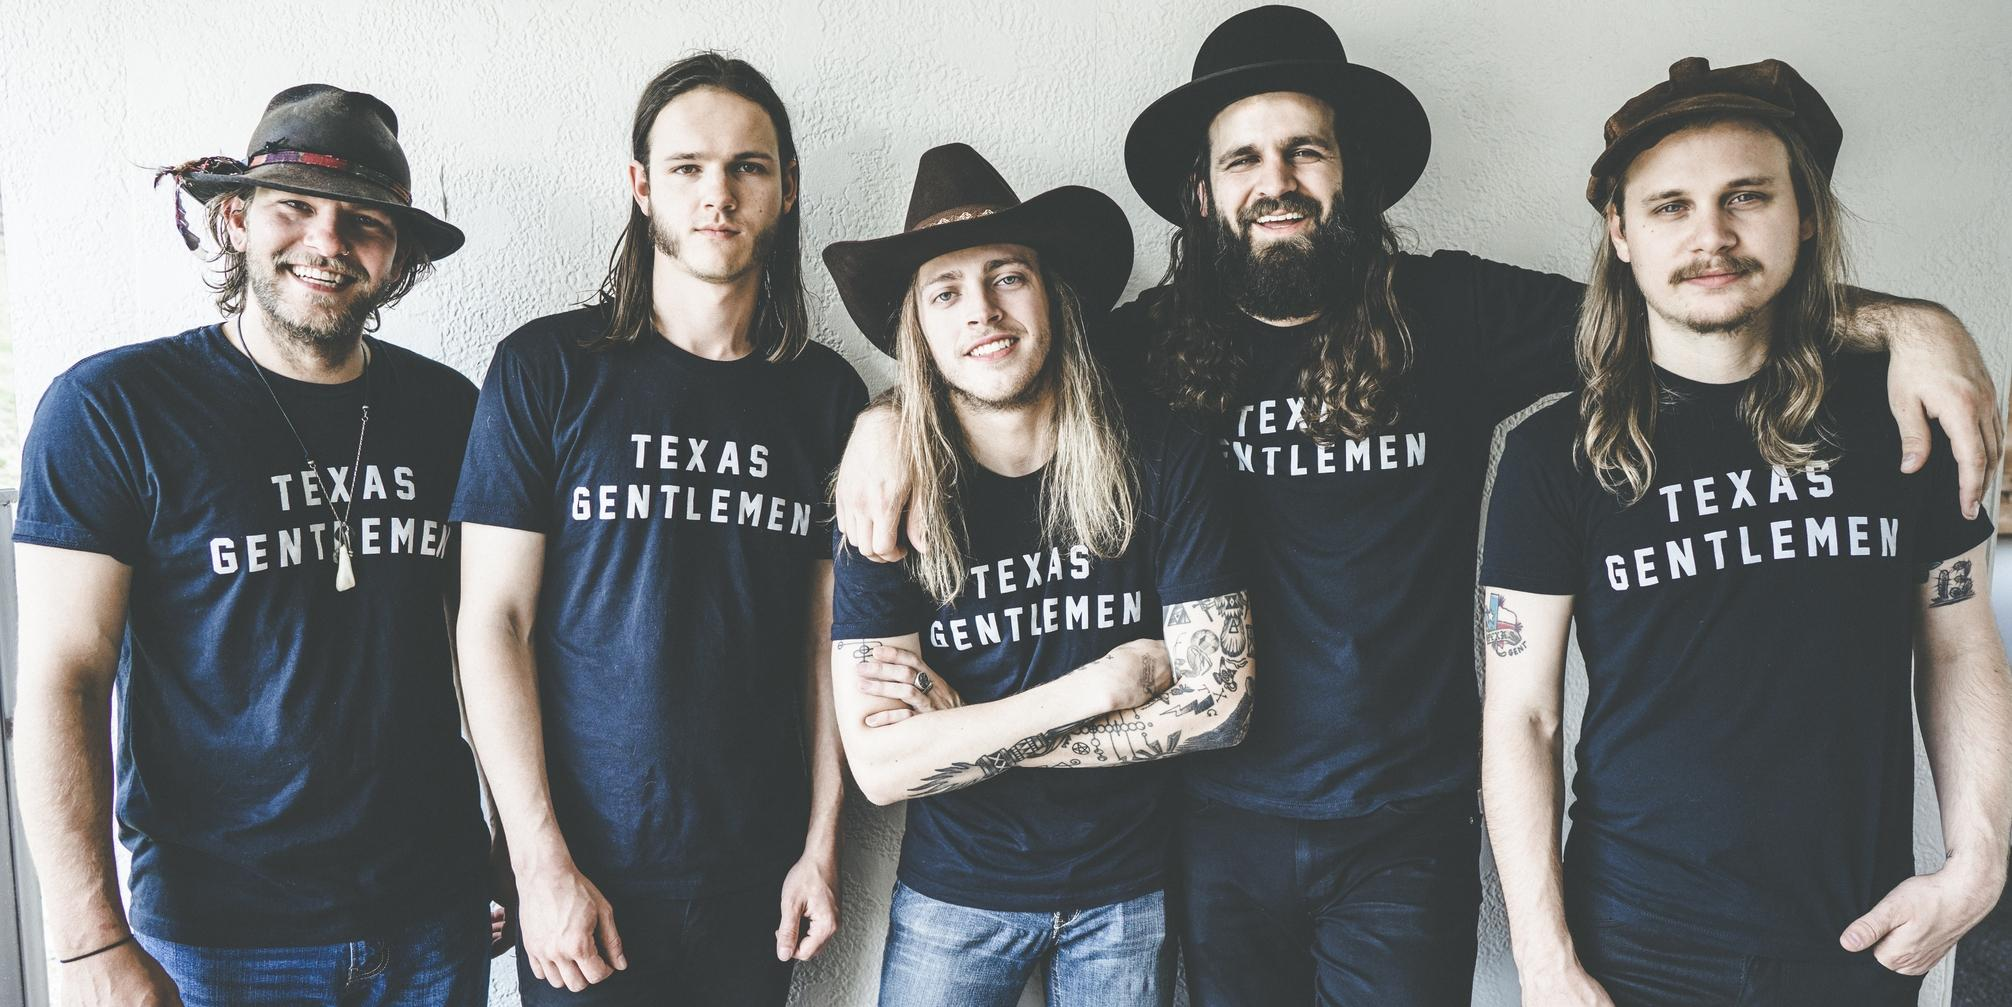 Get To Know TTMR 22 Artist: Texas Gentlemen